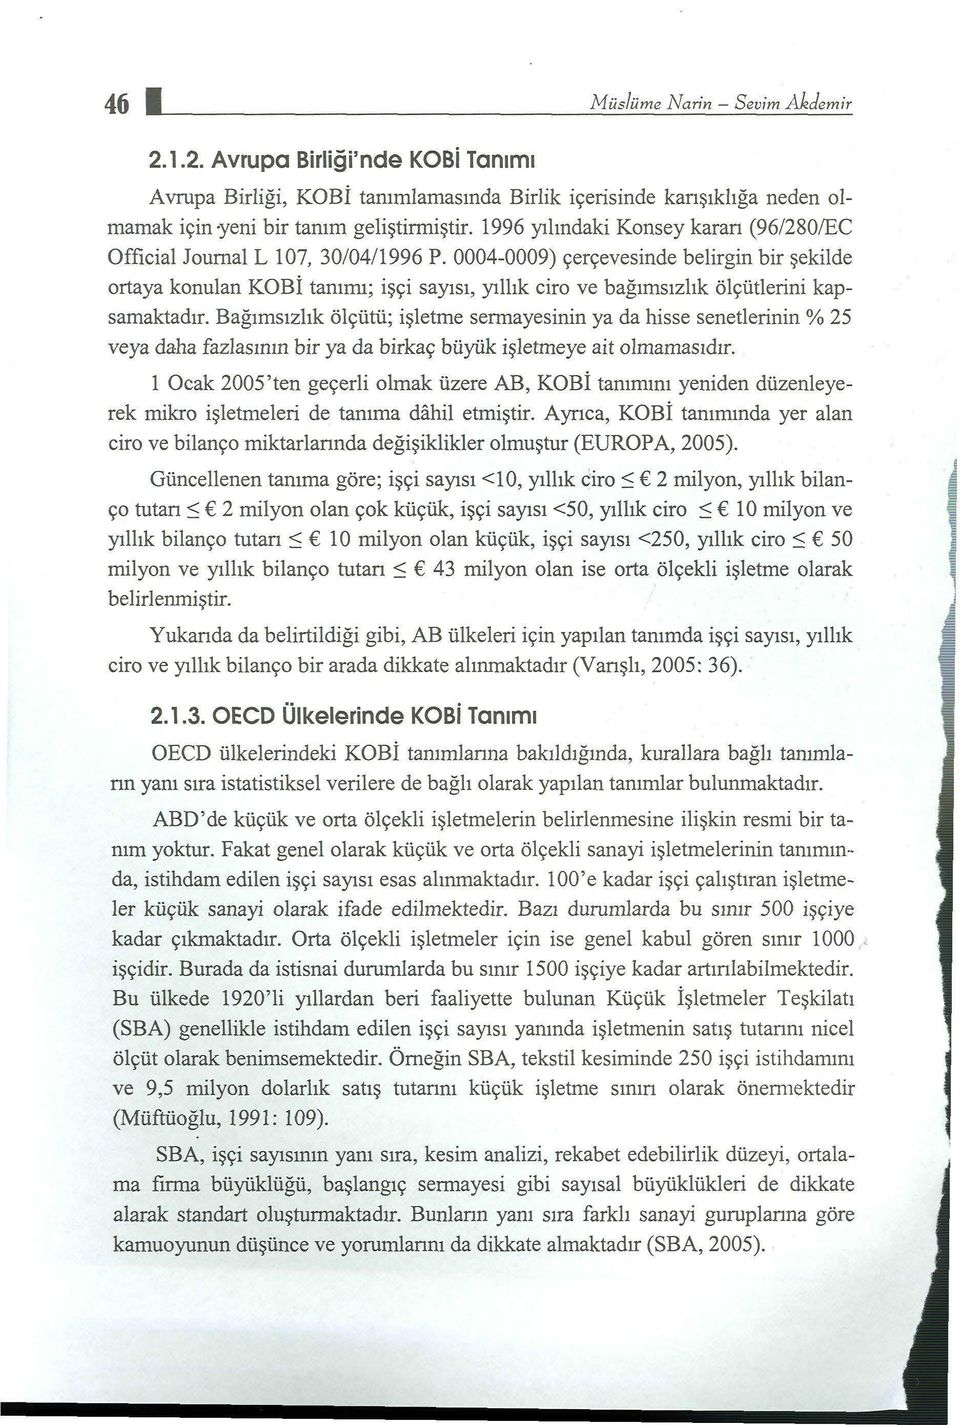 1996 yılındaki Konsey karan (96/280/EC Official Journal L 107, 30/04/1996 P.